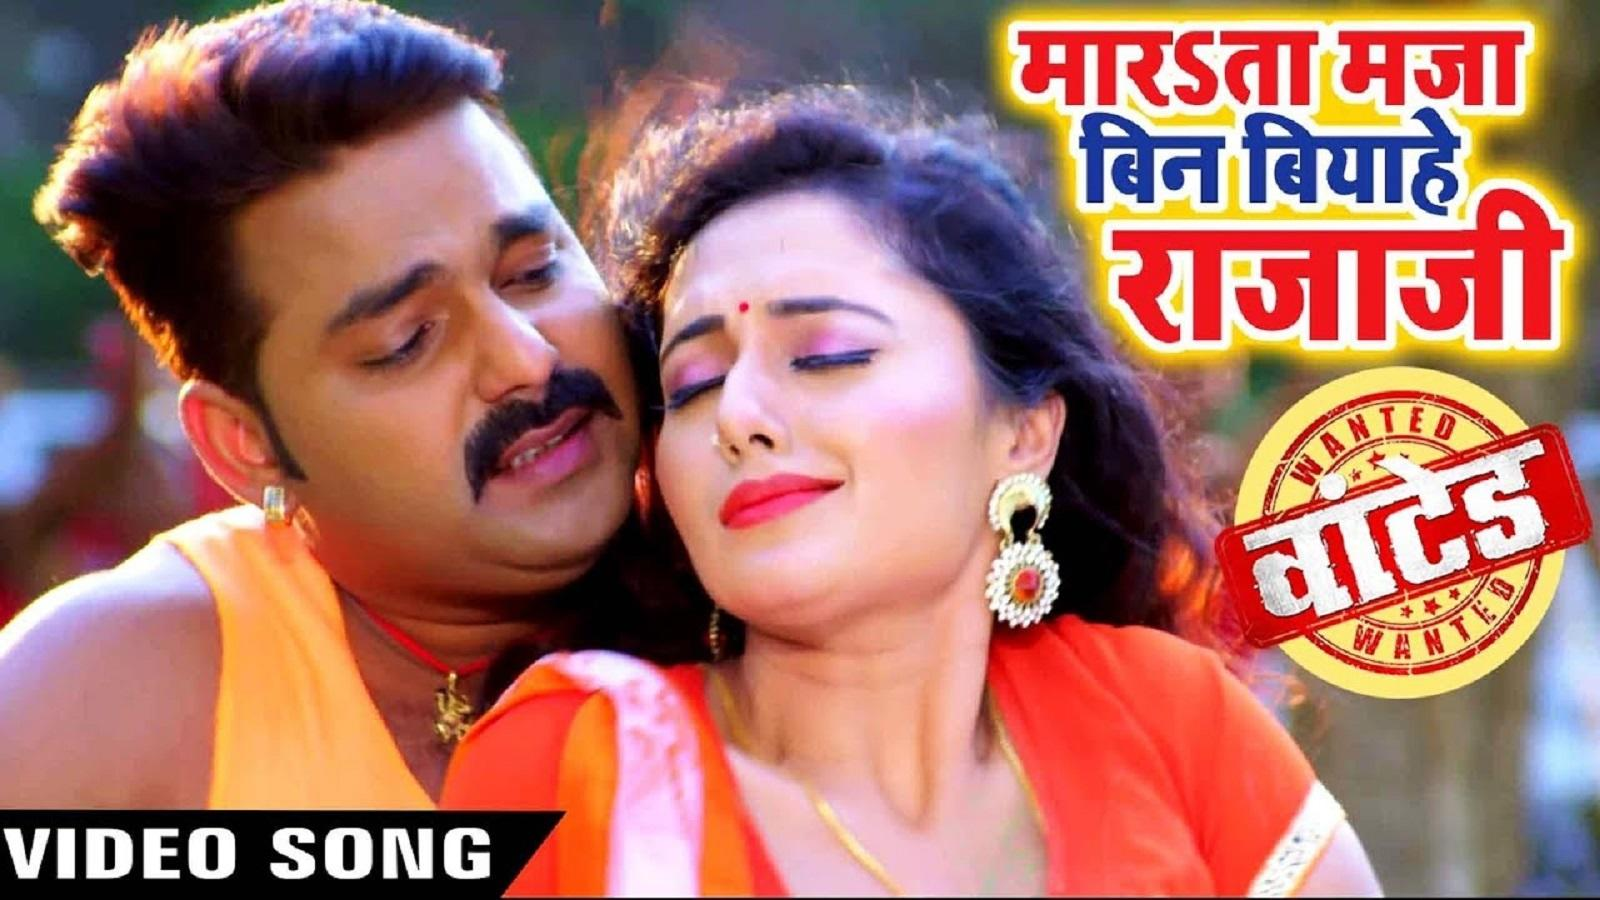 rehne do chhodo bhi jaane do yaar mp3 song download